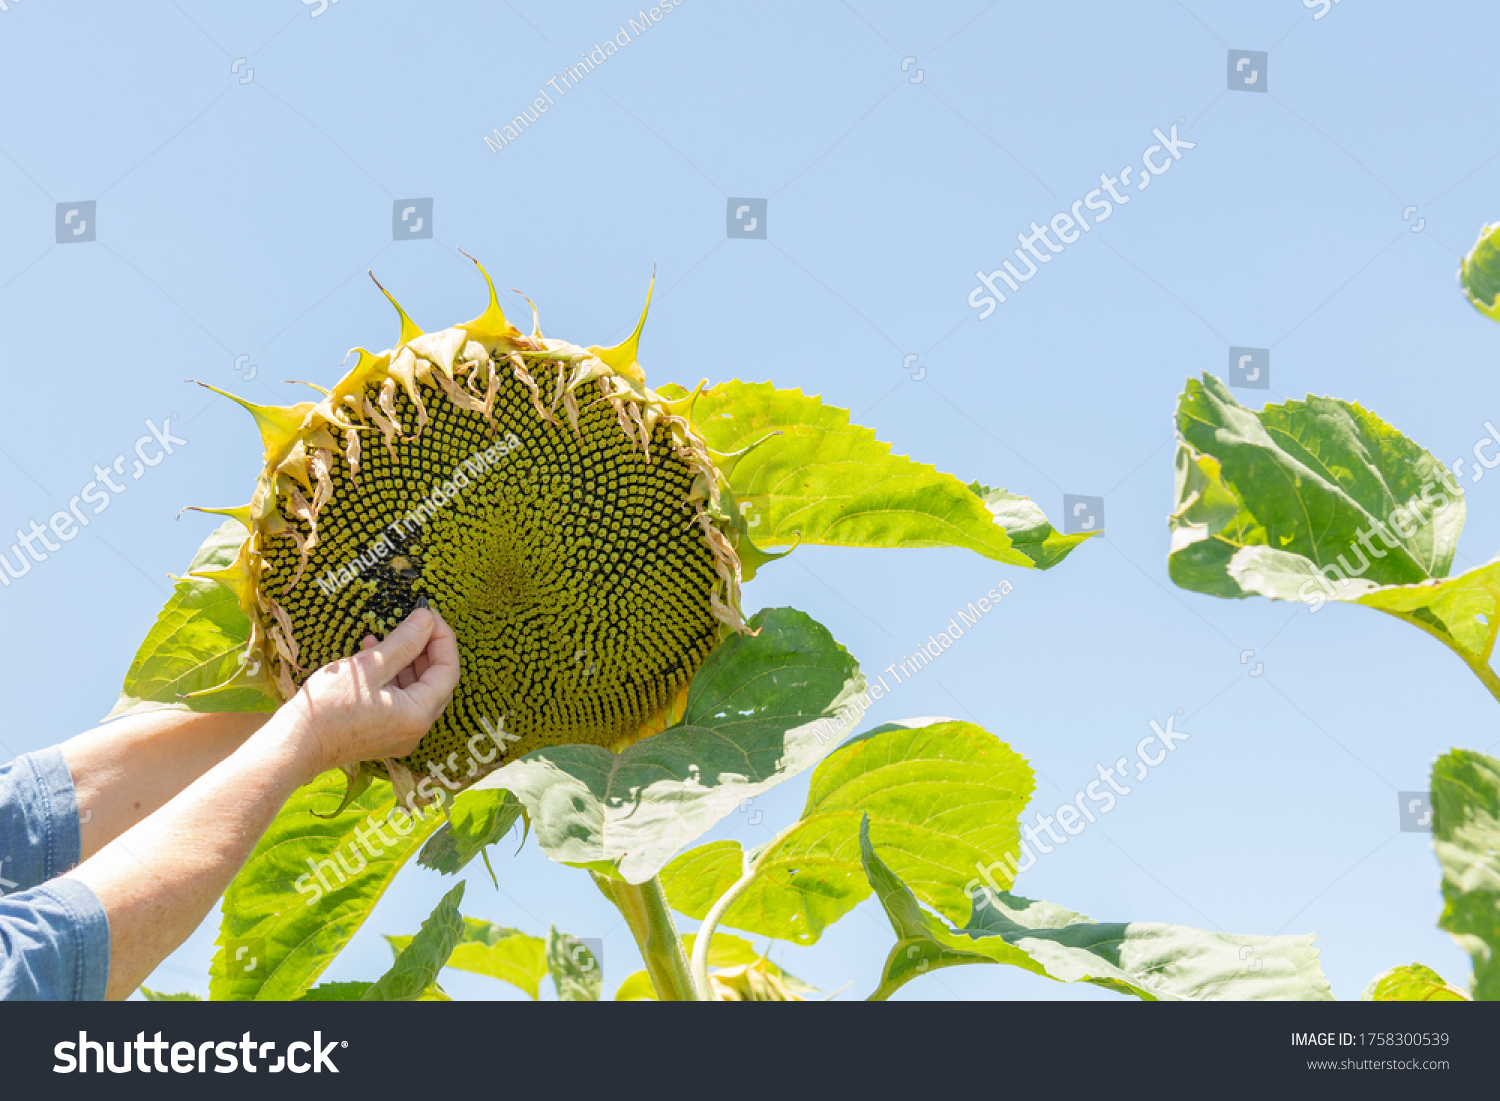 stock-photo-sunflower-plant-to-make-oil-